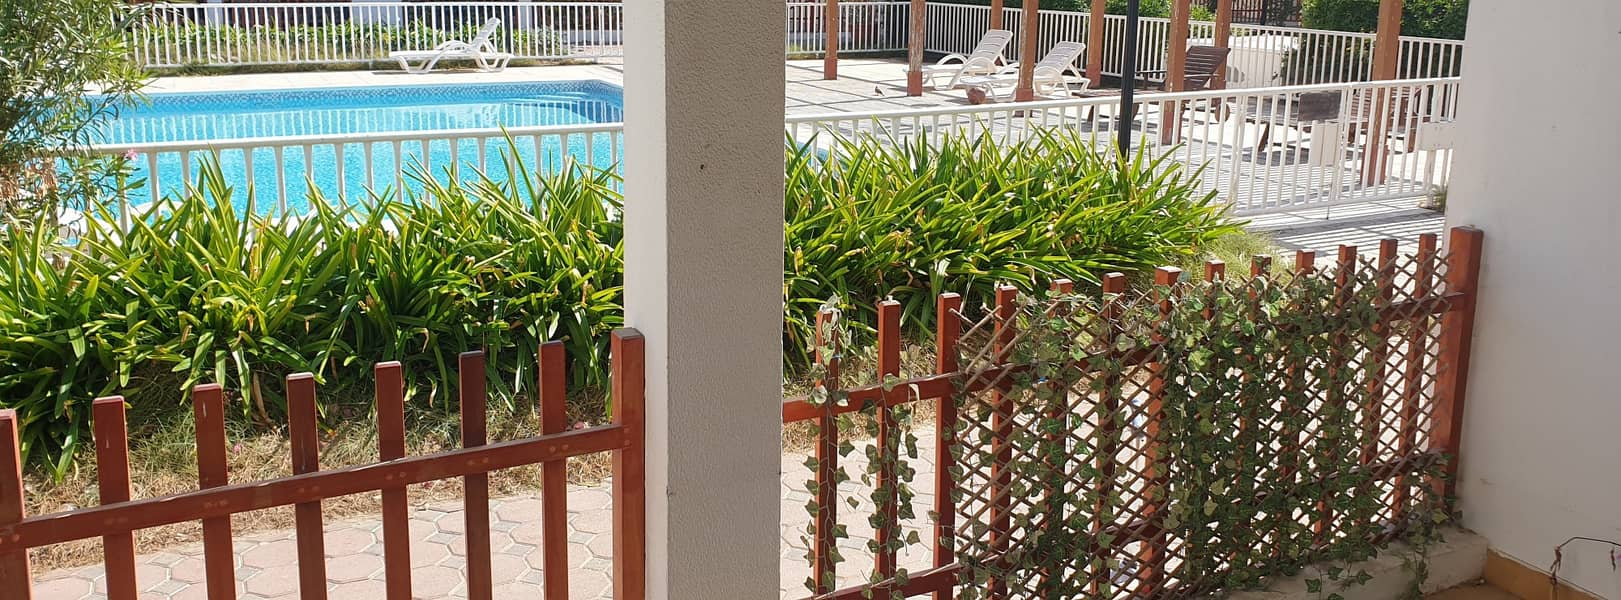 12 3 BED CHARMING CUTE VILLA WITH PRIVATE GARDEN AND SHARED POOL IN JUMEIRAH 2